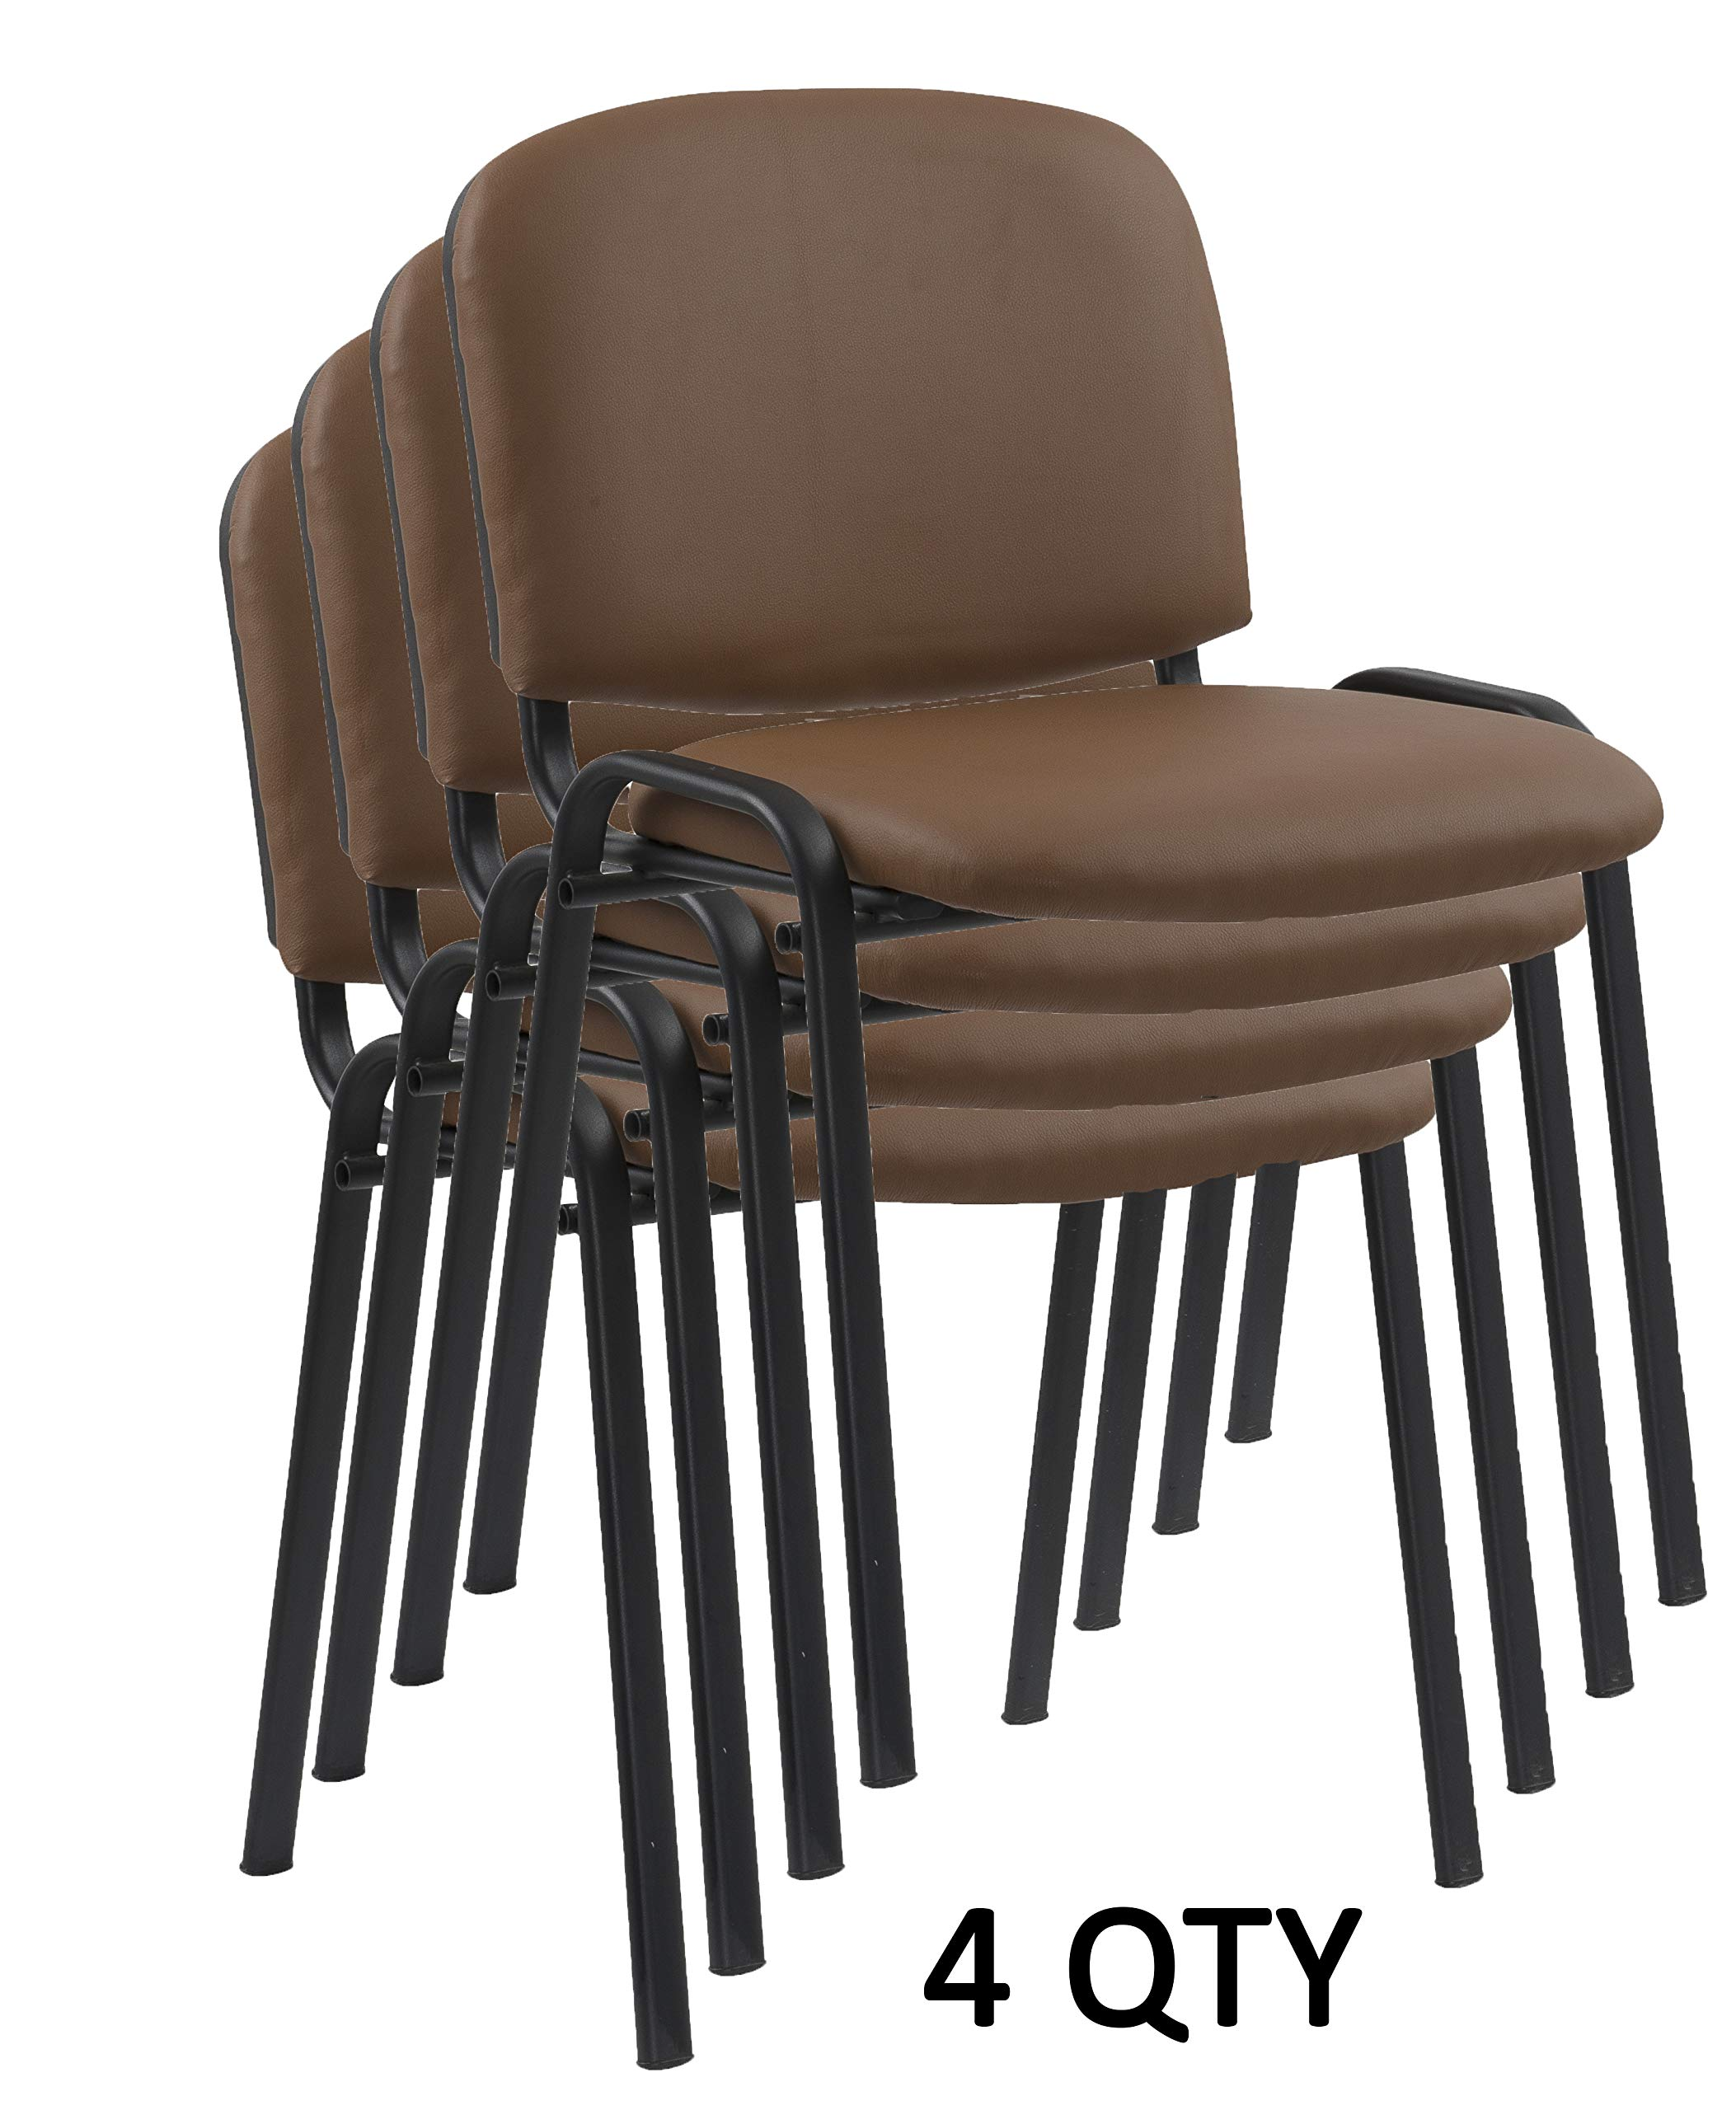 Modern Stacking Chairs in Tan/Camel PU Leather - for Office Training Boardrooms Canteens Community Centers and Home | Pack of 4 by US Office Elements